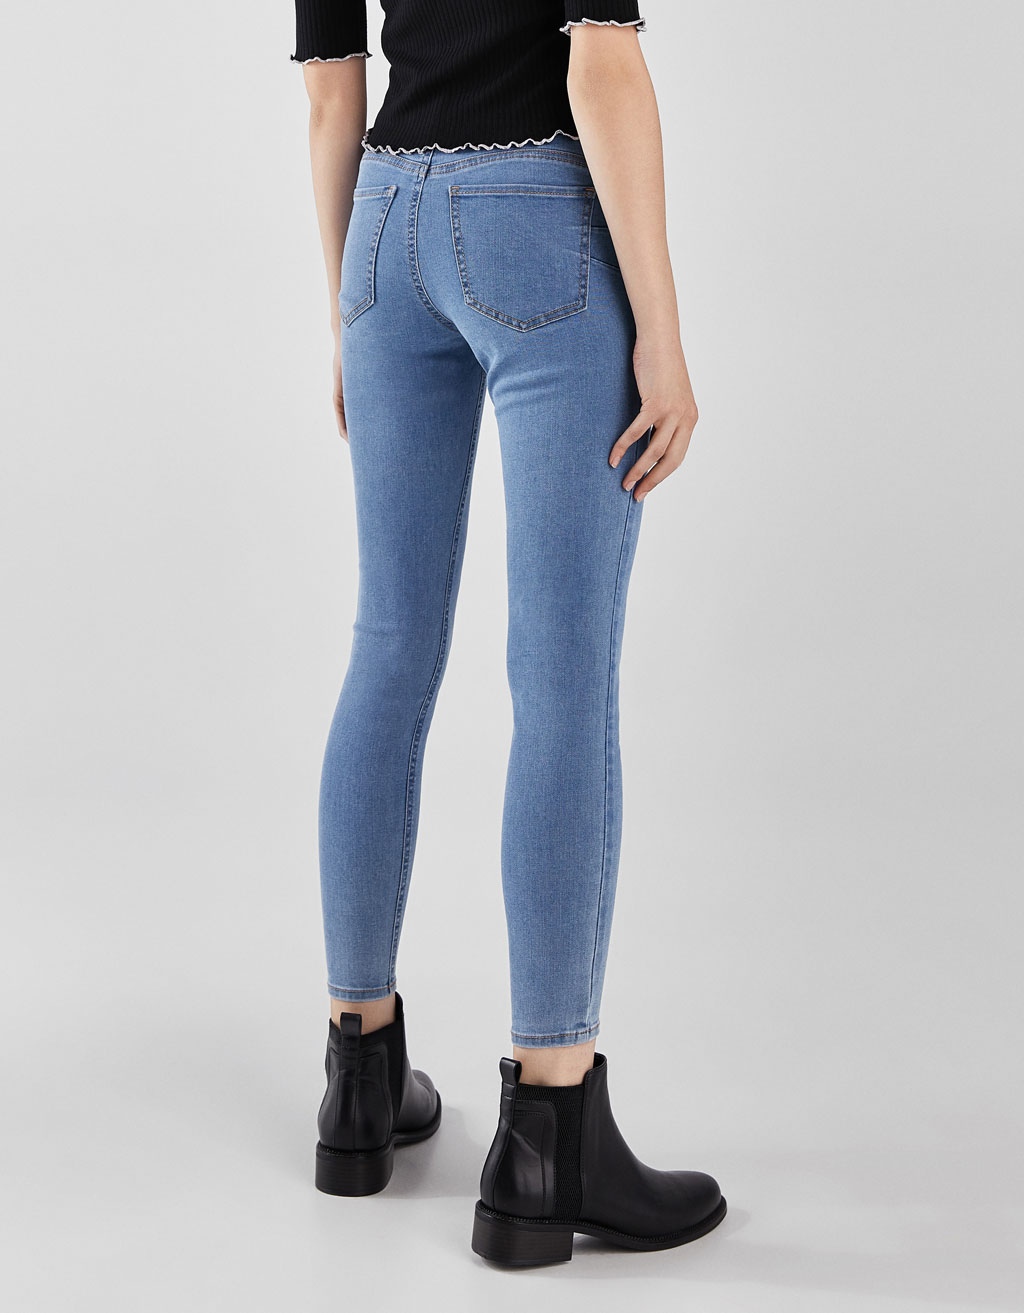 Low Rise Push Up Jean